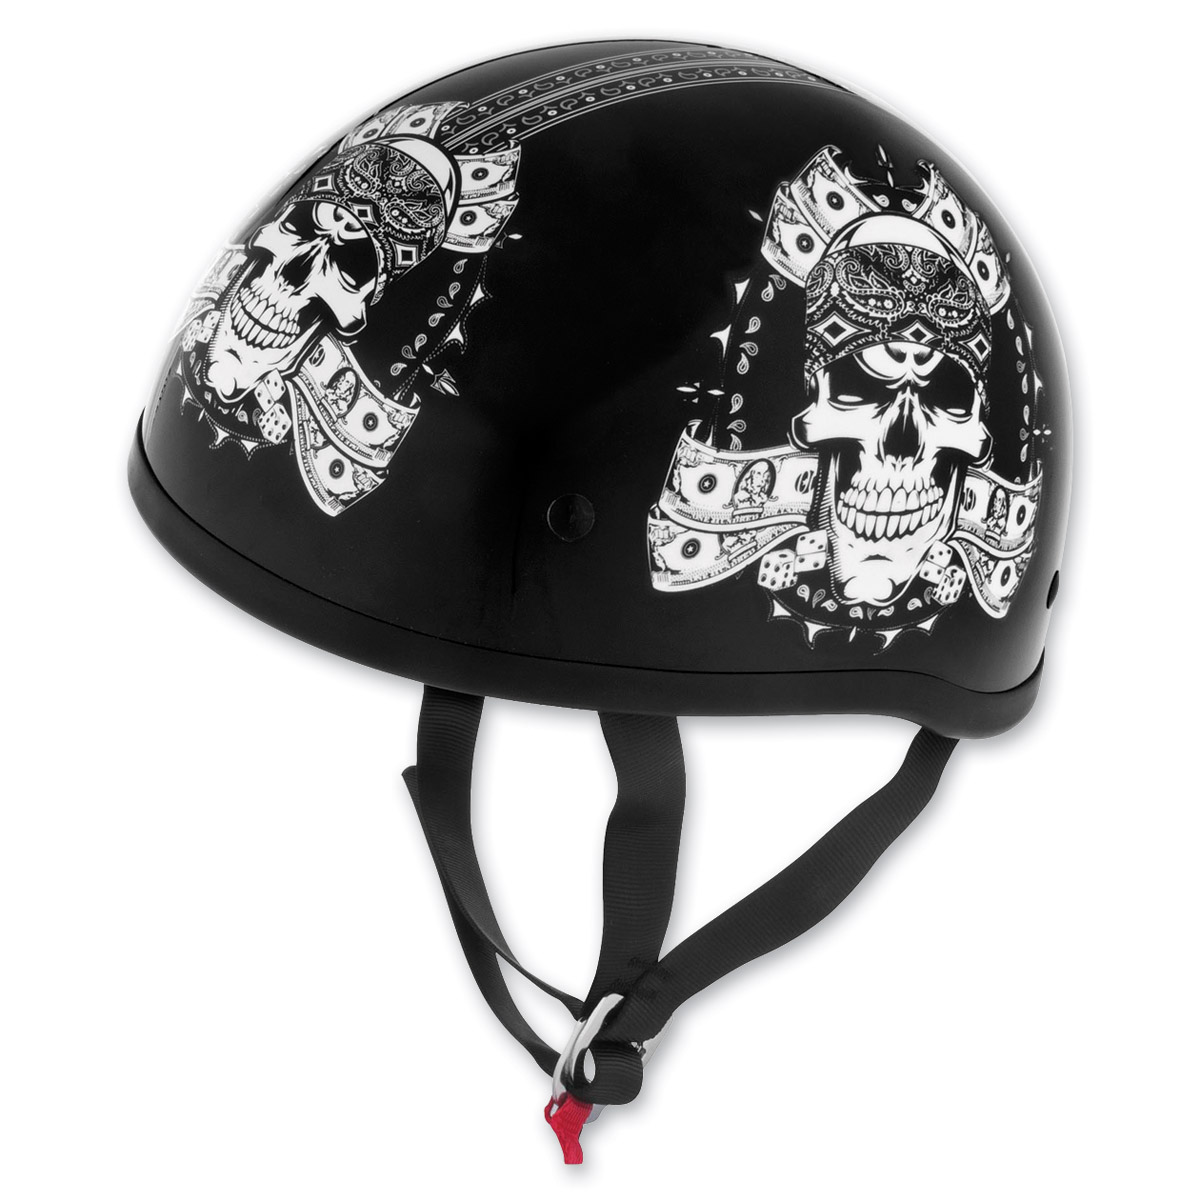 Skid Lid Original Thug Skull Black and White Half Helmet